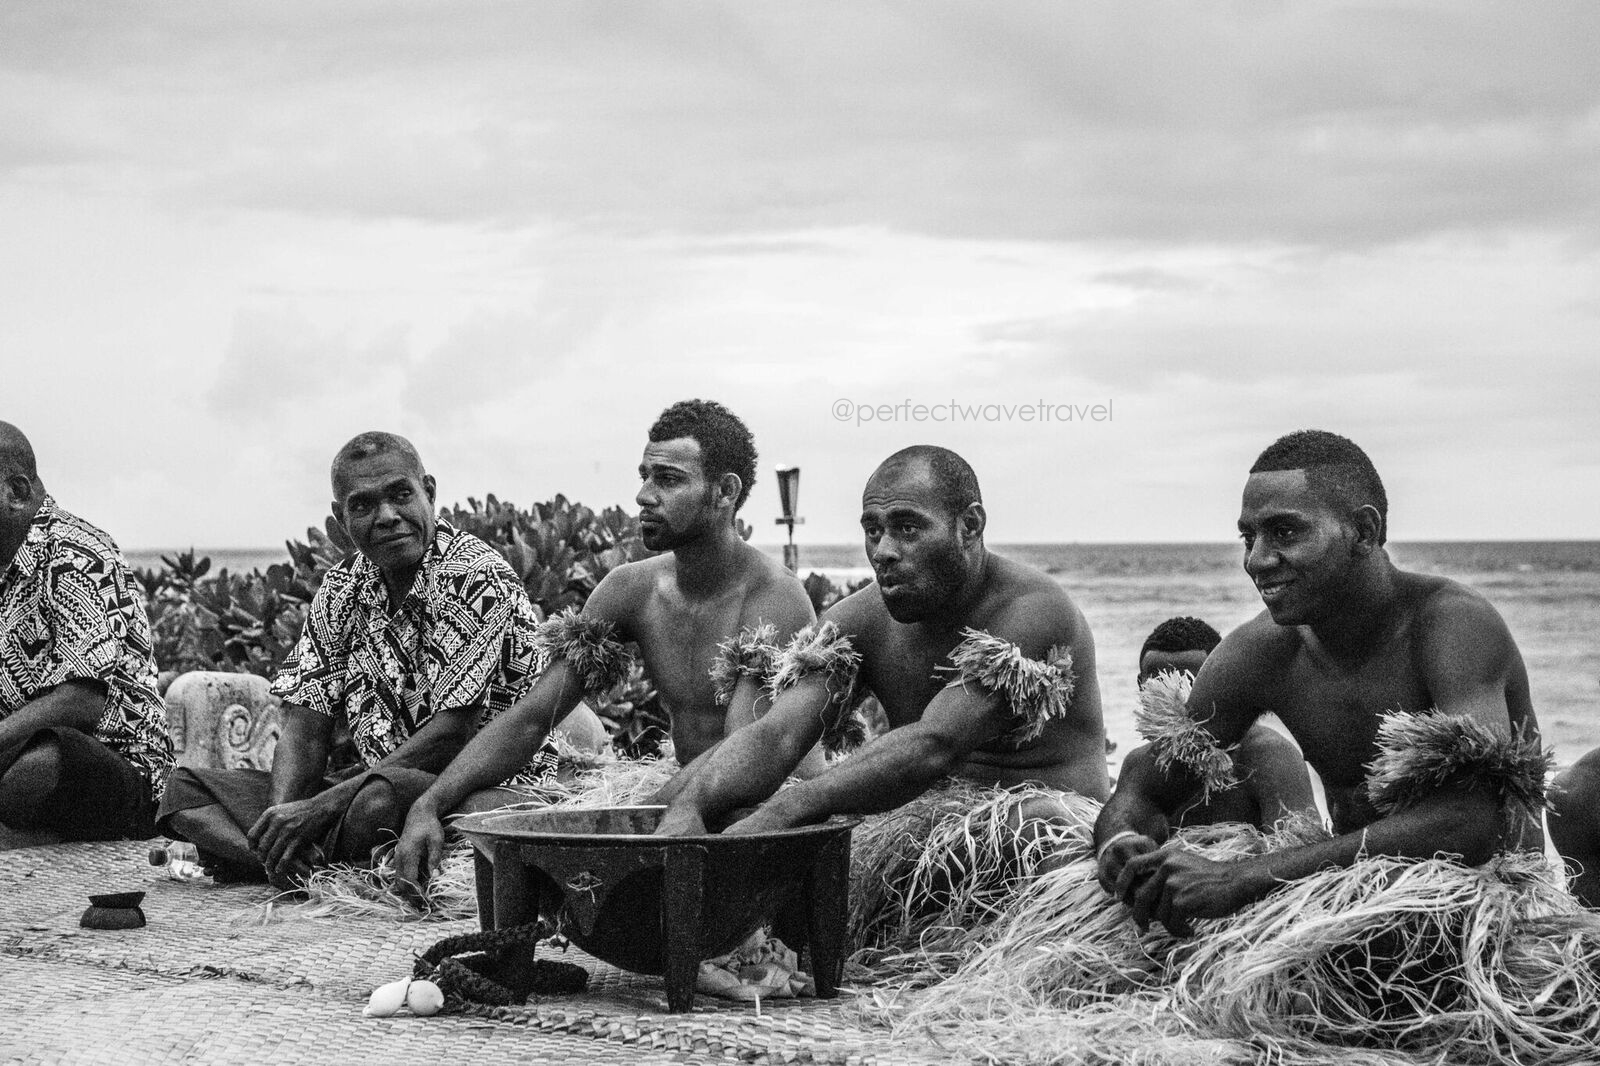 20-local-kava-ceremony-to-give-our-thanks-to-the-lsland-and-her-people_preview